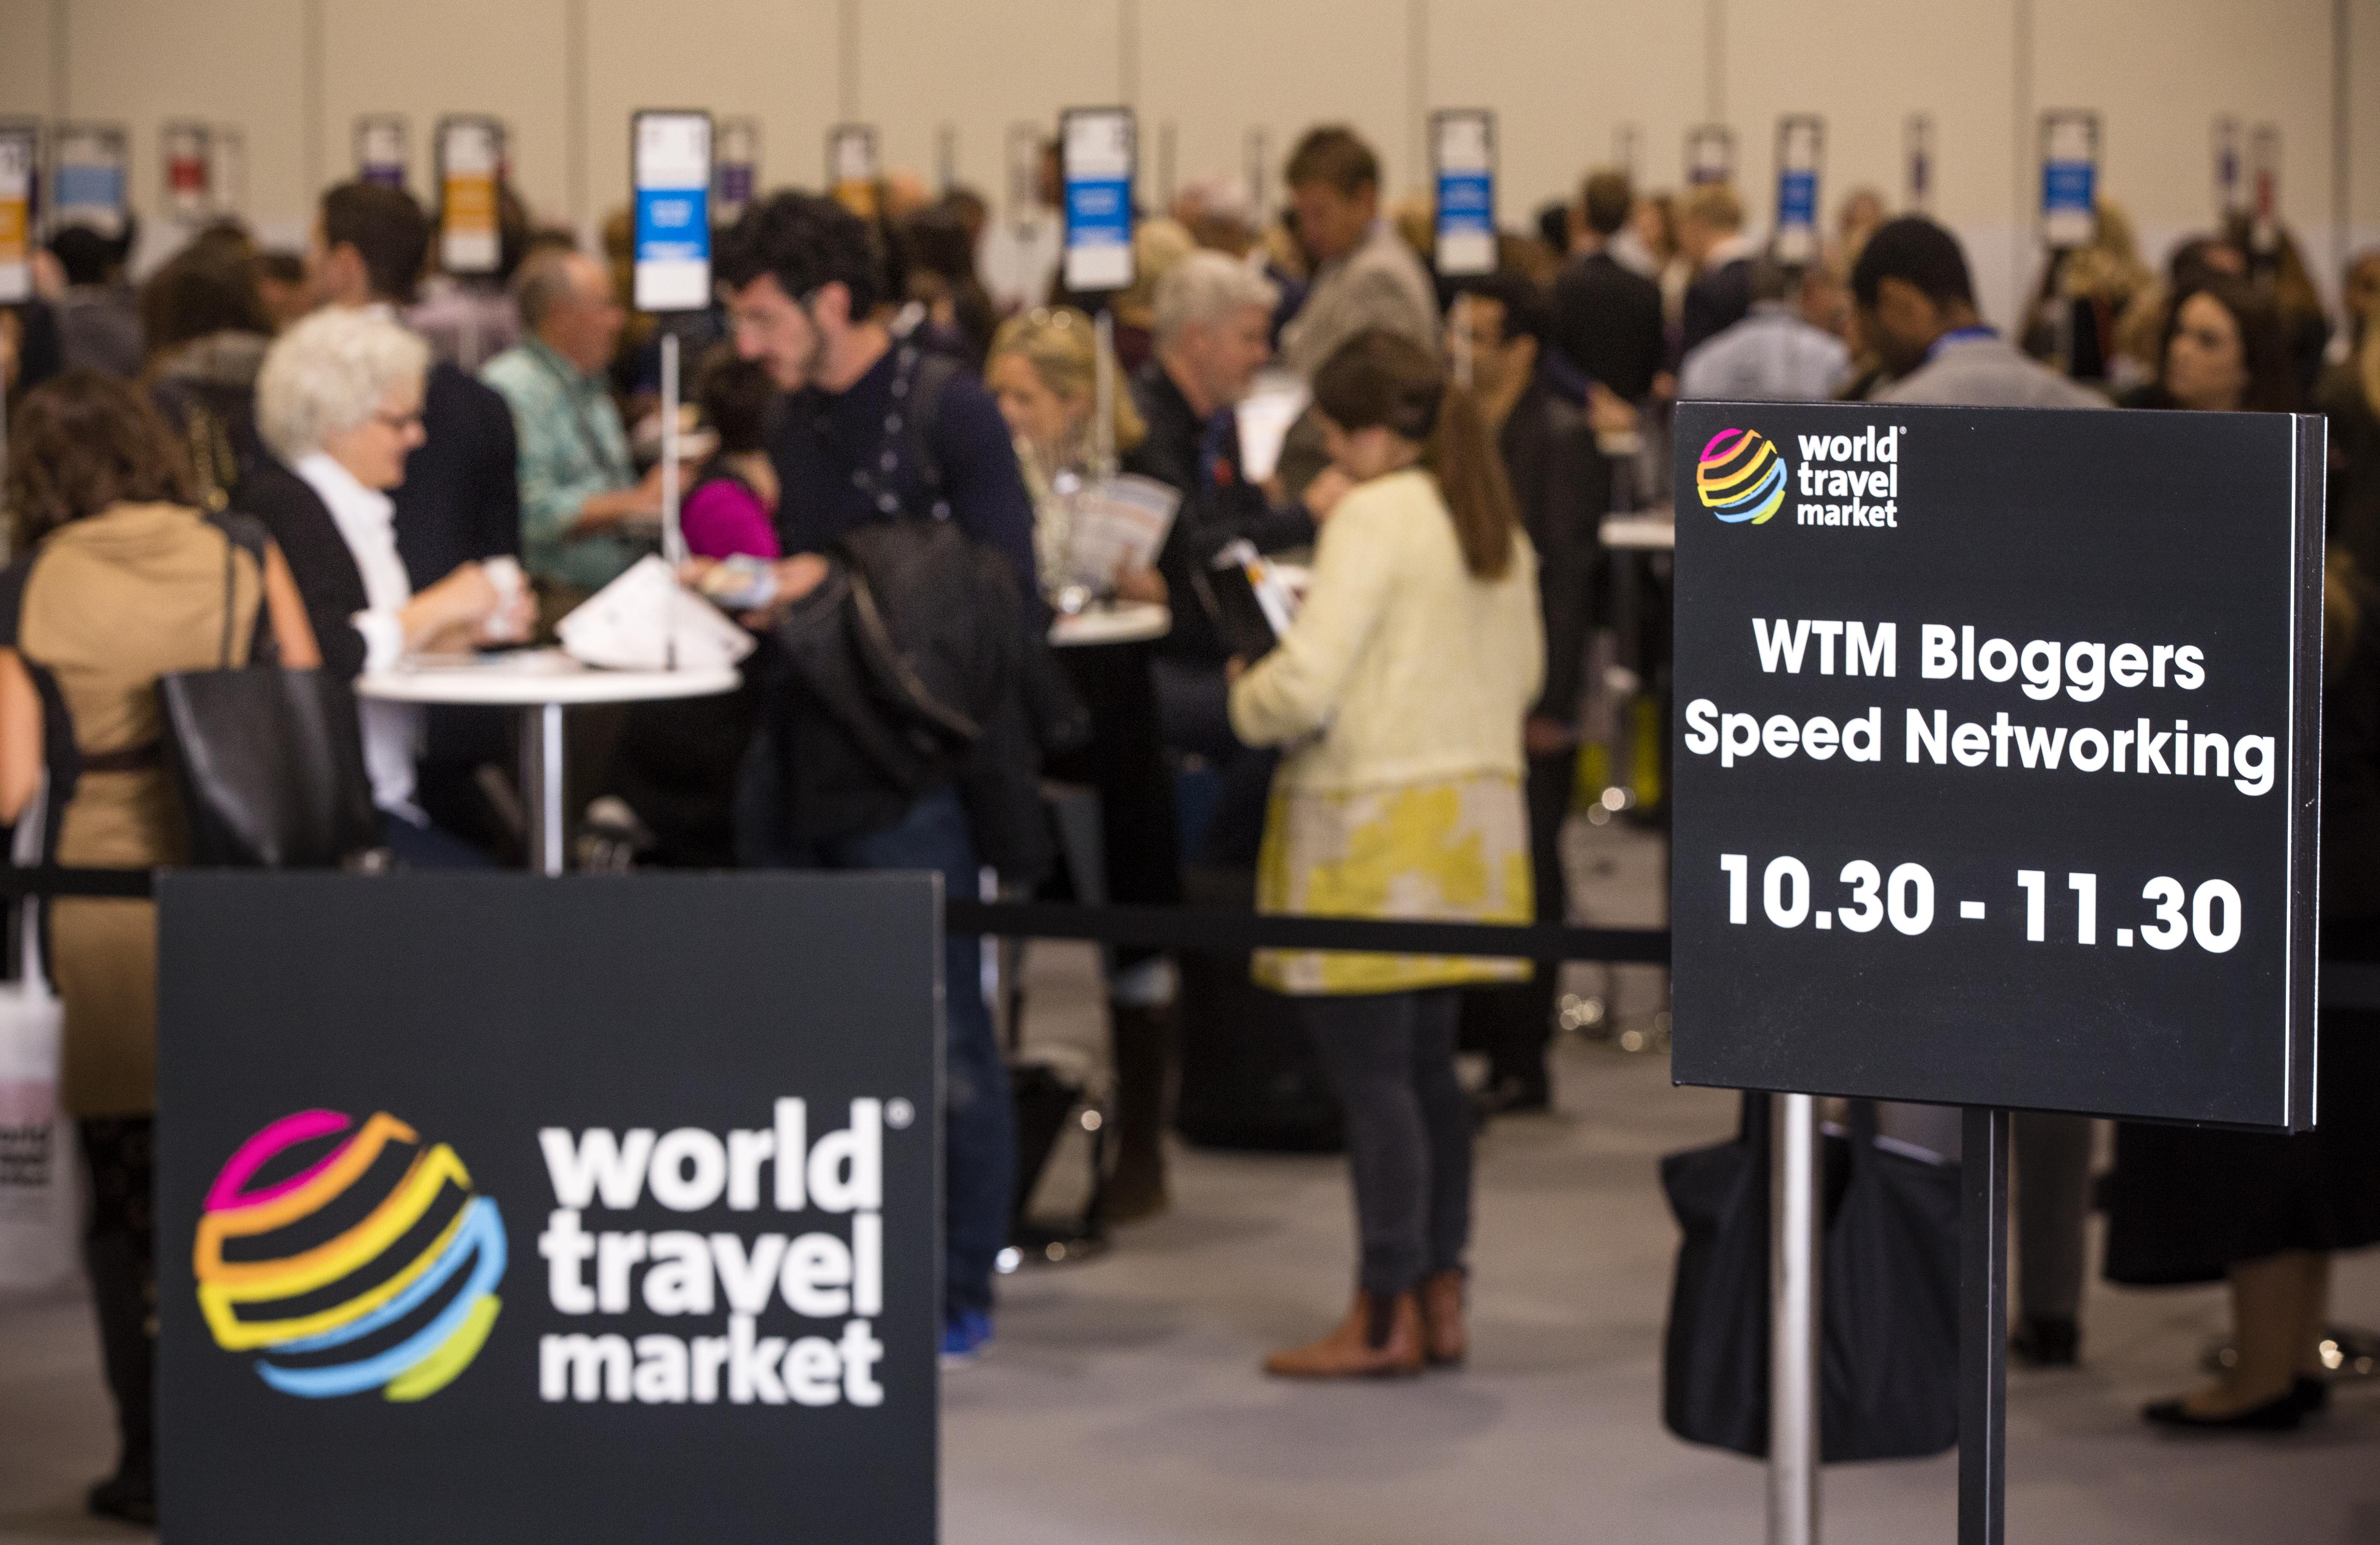 Bloggers Urged to Apply for WTM London Bloggers Speed Networking